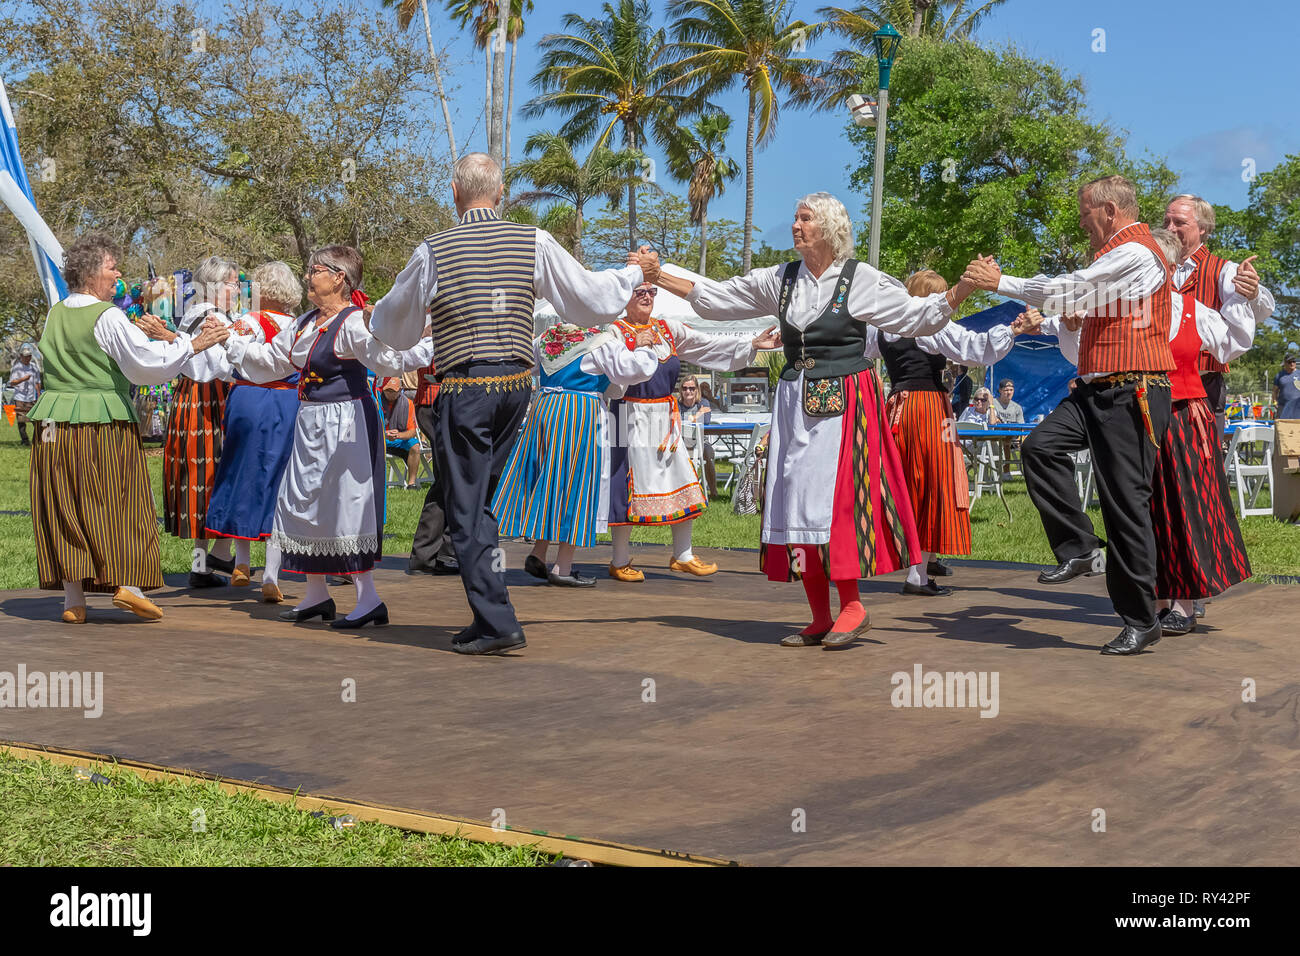 Lake Worth, Florida, USA March 3, 2019, Midnight Sun Festival Celebrating Finnish Culture. The couples hold hands as they around and around. - Stock Image